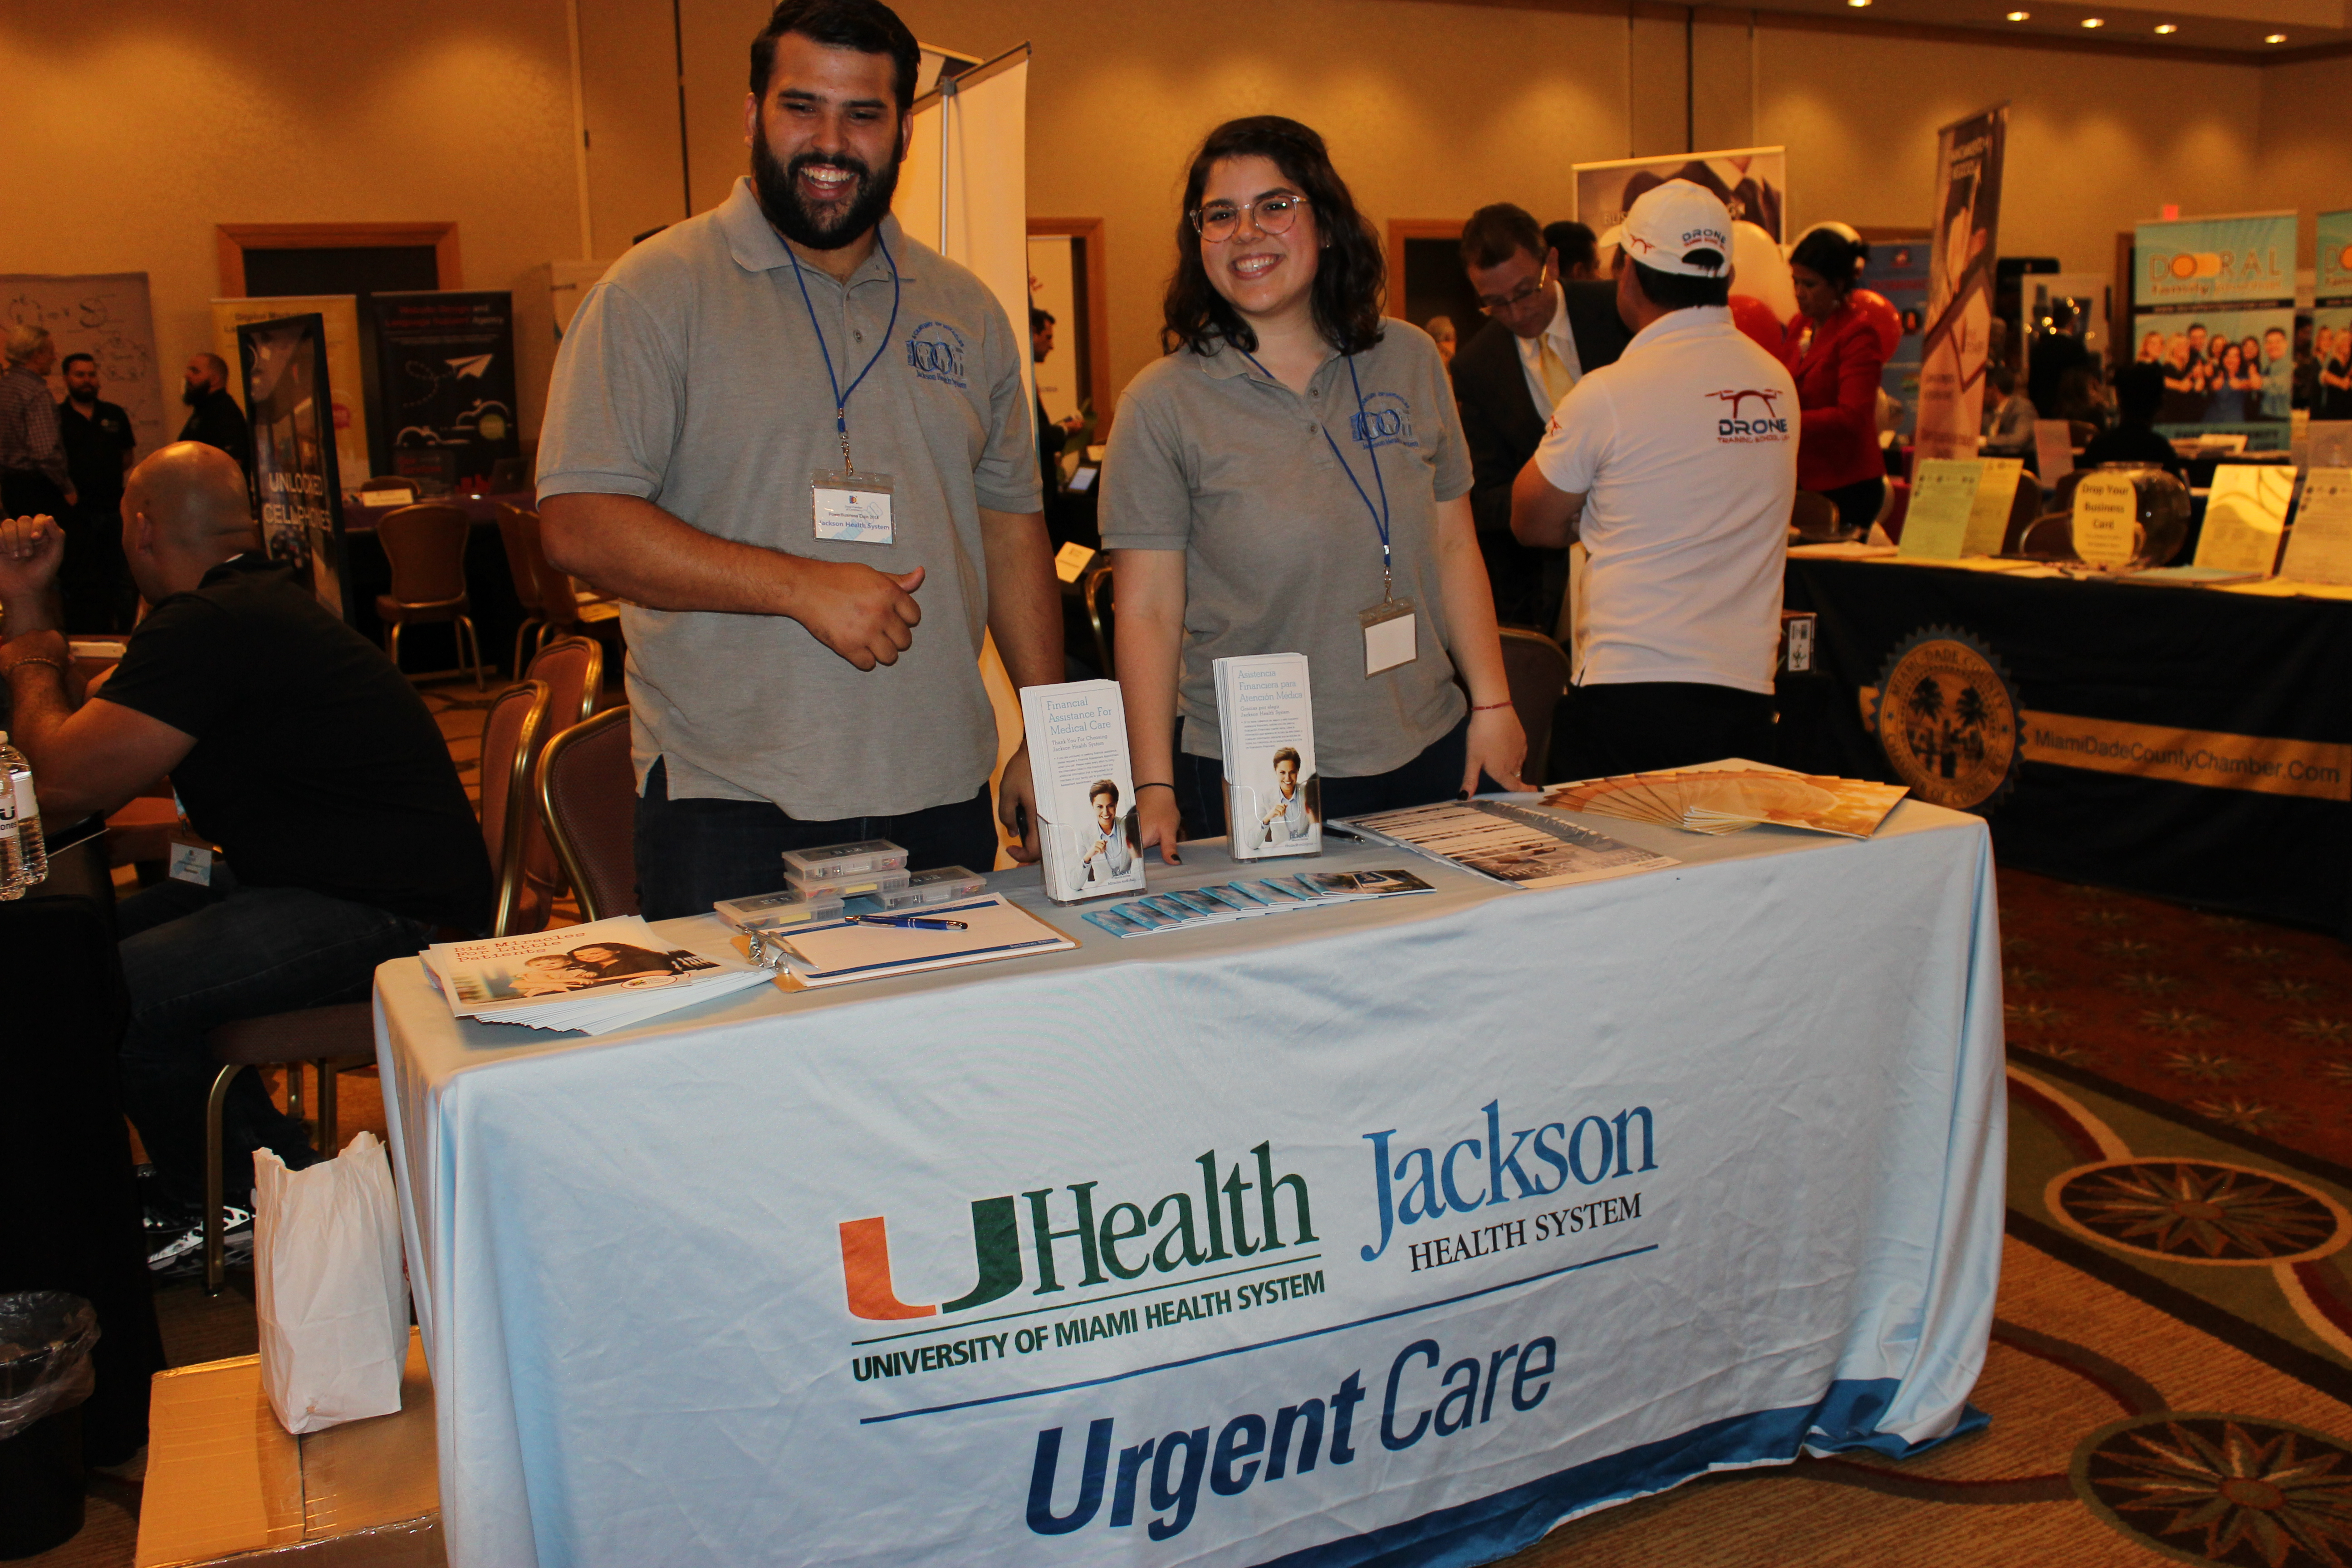 Jackson Health System representing business in ExpoMiami 2018 hosted by the Doral Chamber of Commerce.